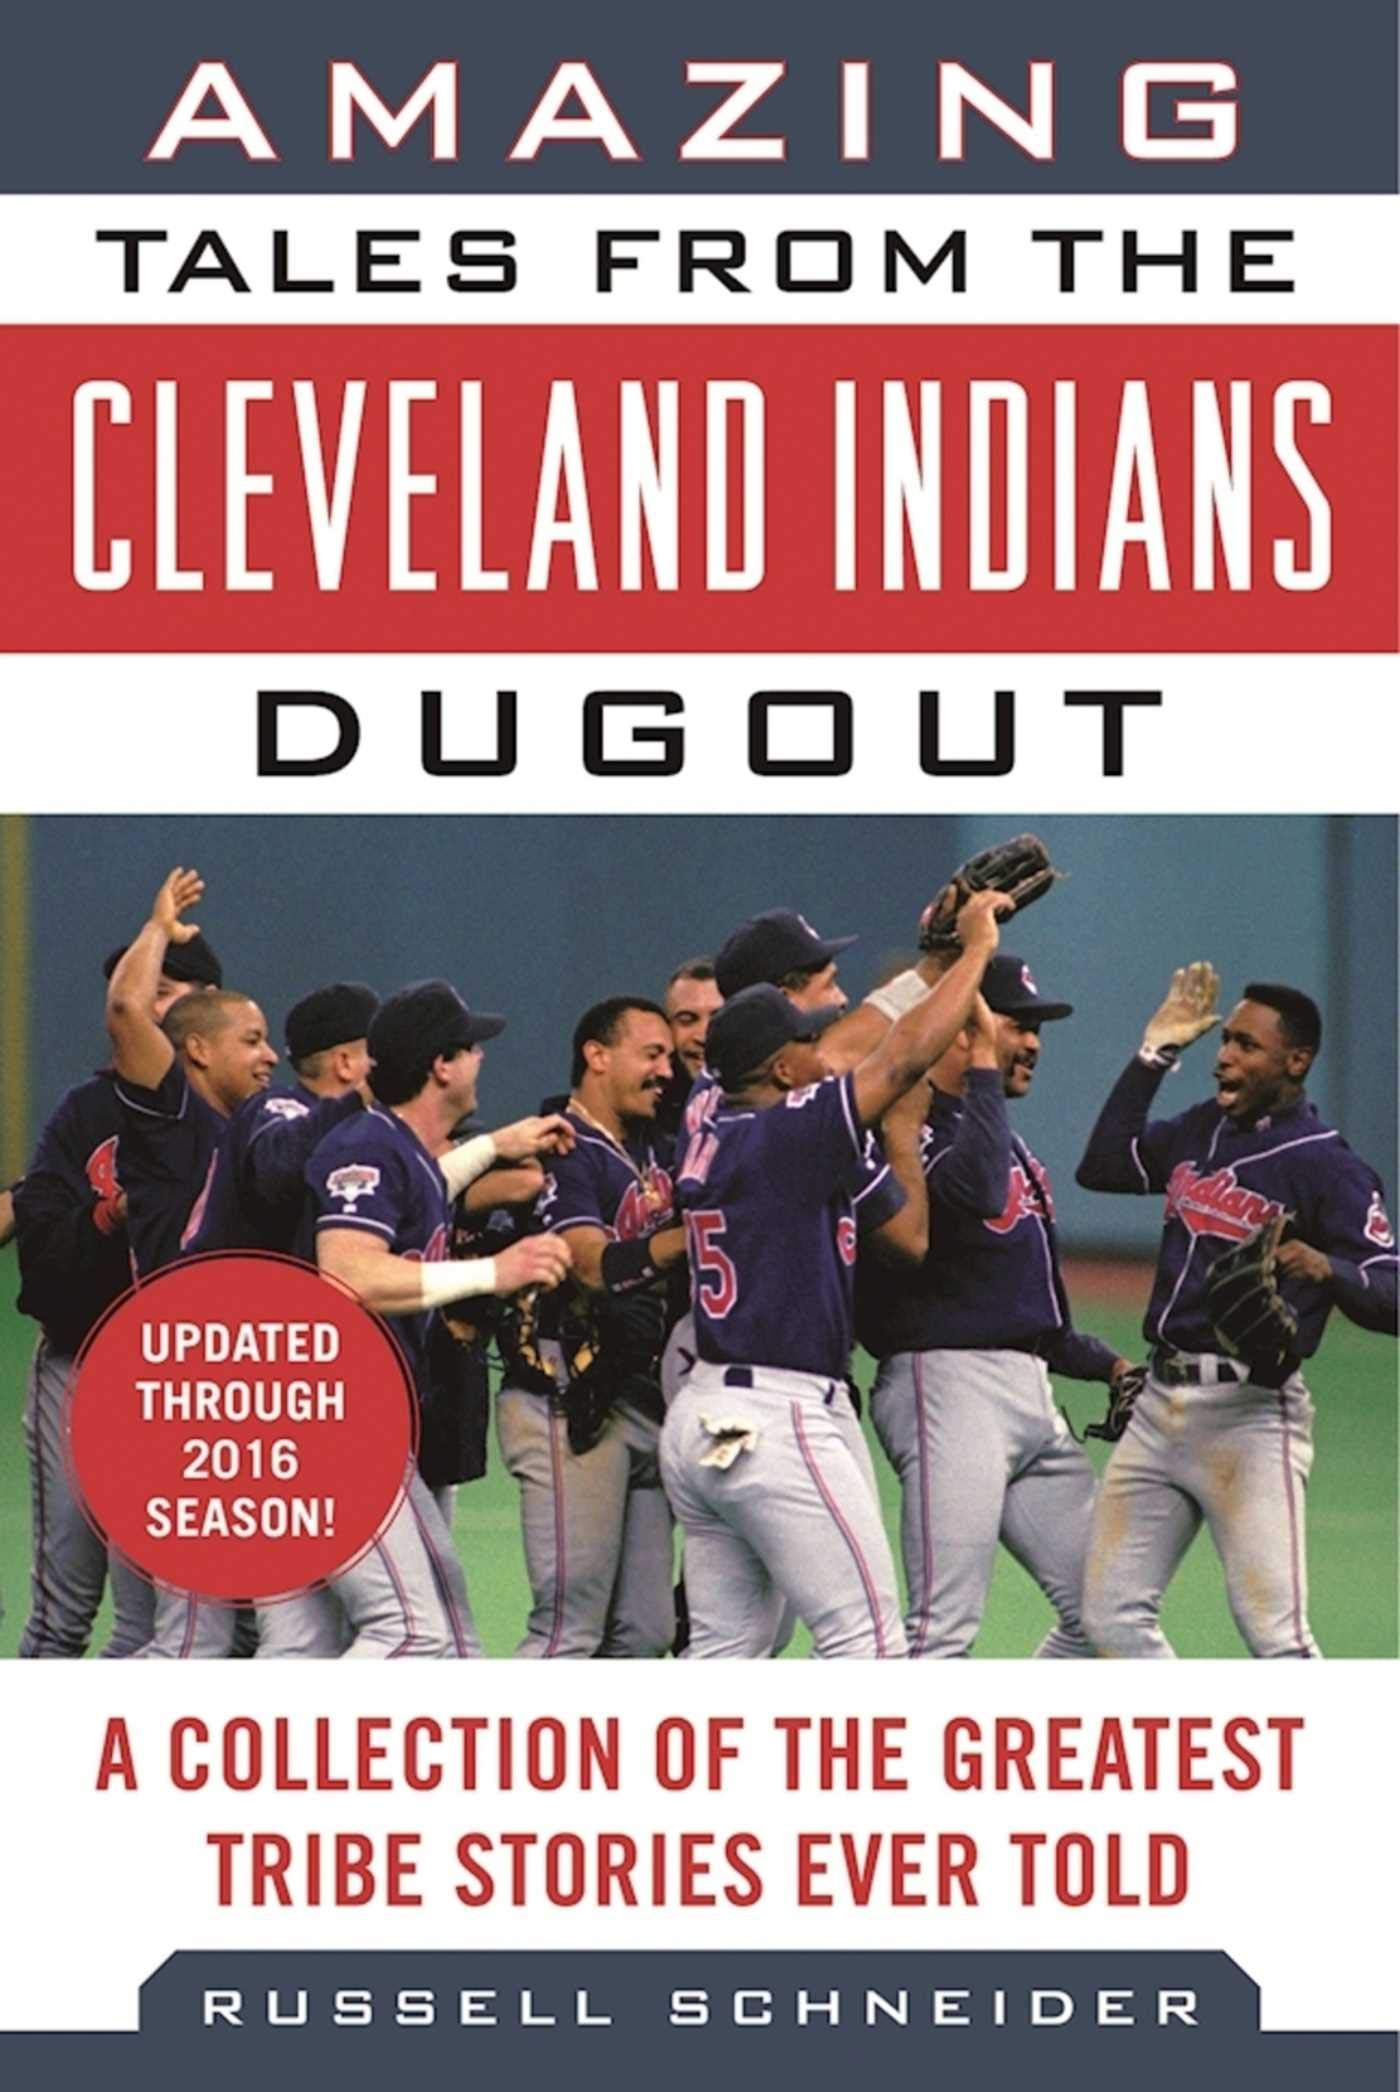 Amazing Tales Cleveland Indians Dugout product image